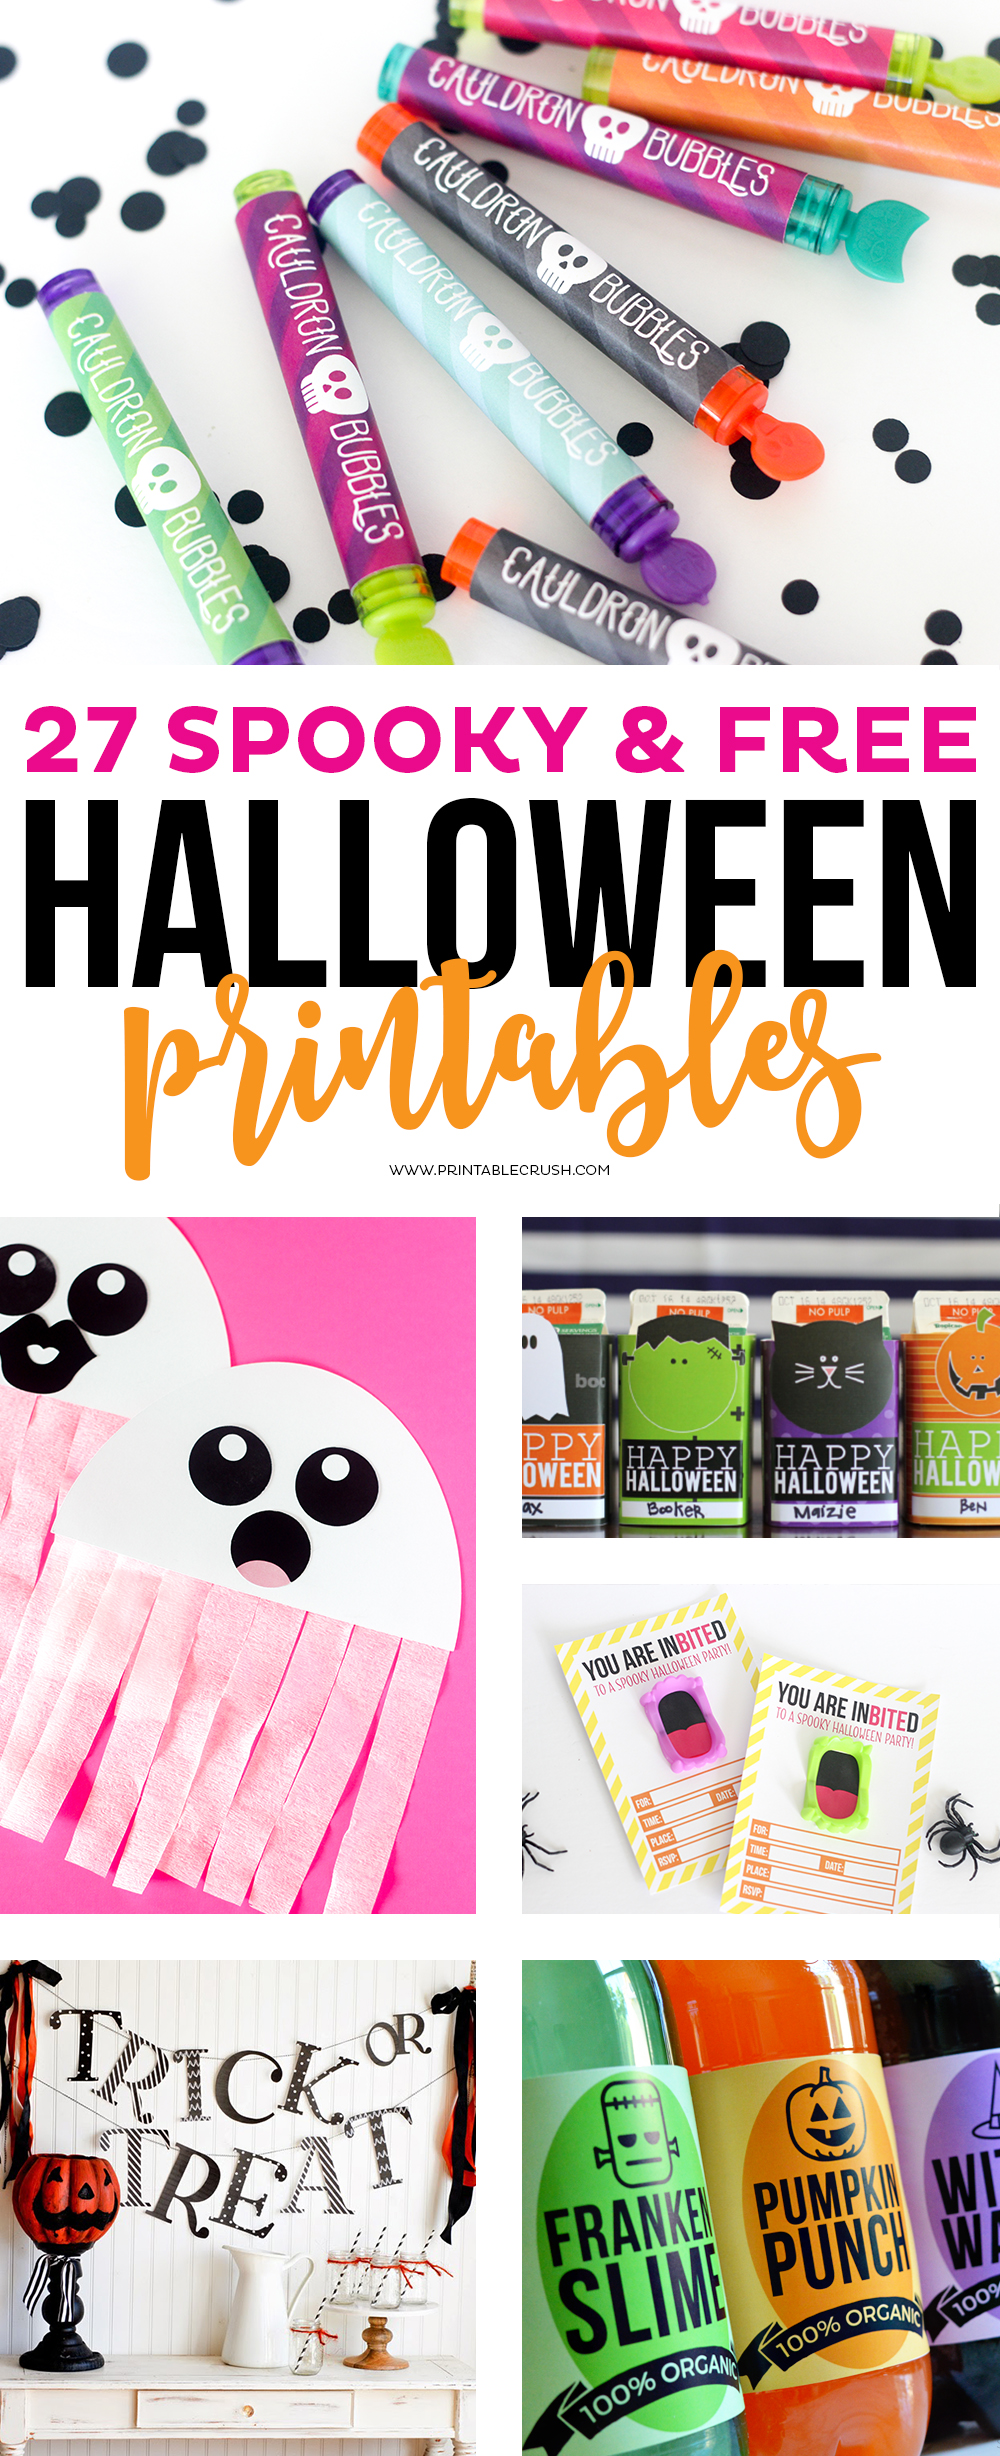 http://printablecrush.com/wp-content/uploads/2016/10/27-spooky-free-halloween-printables.jpg